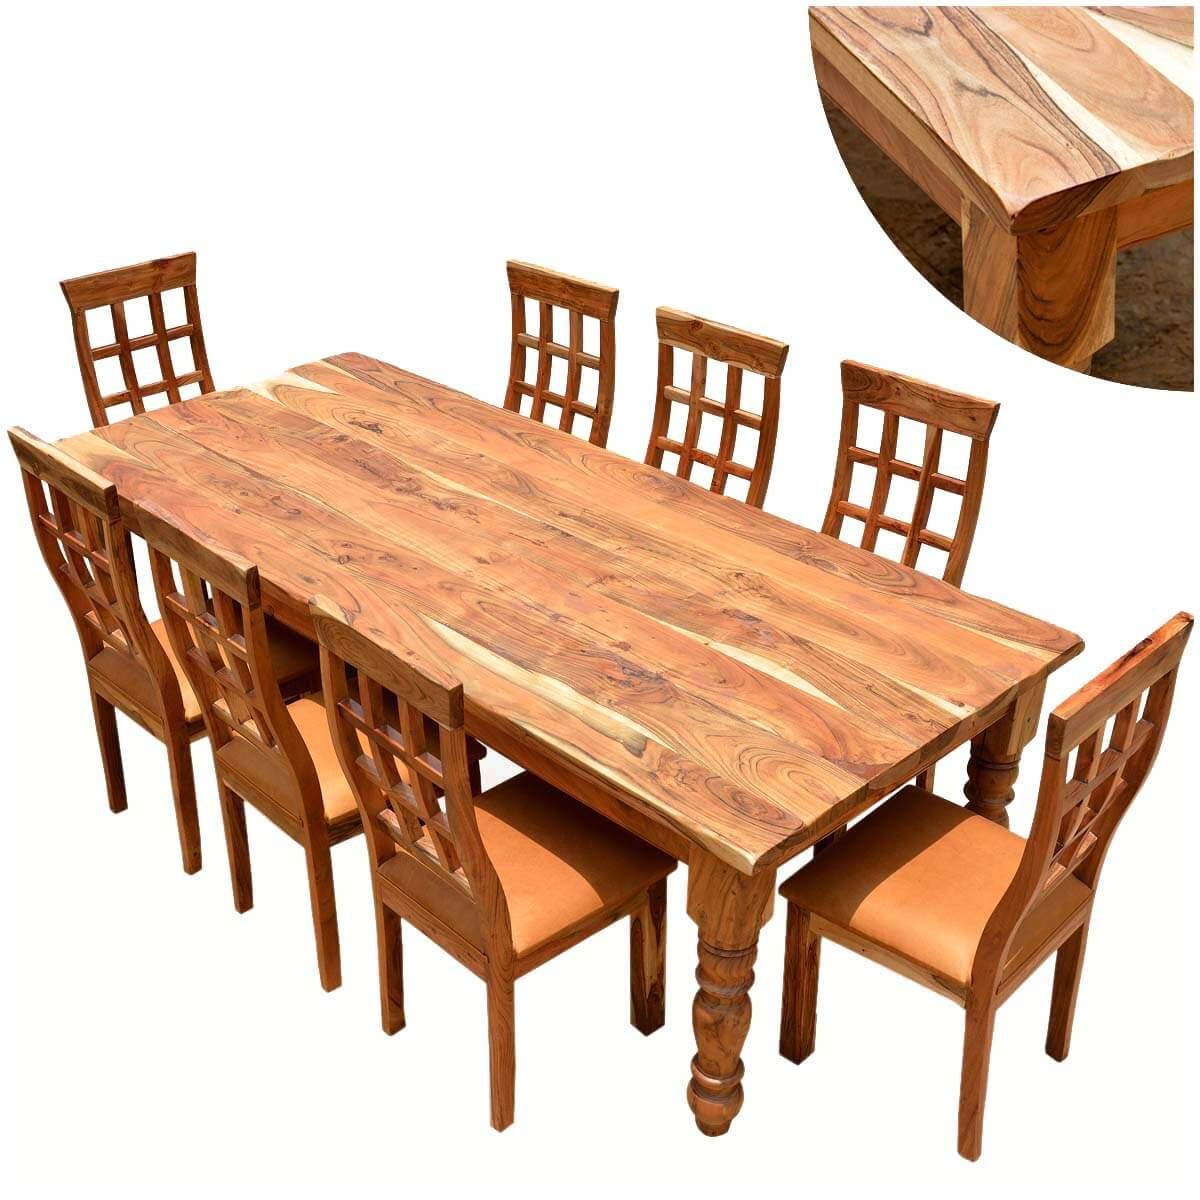 Viva Mexico Chair Rustic Furniture Farmhouse Solid Wood Dining Table Chair Set